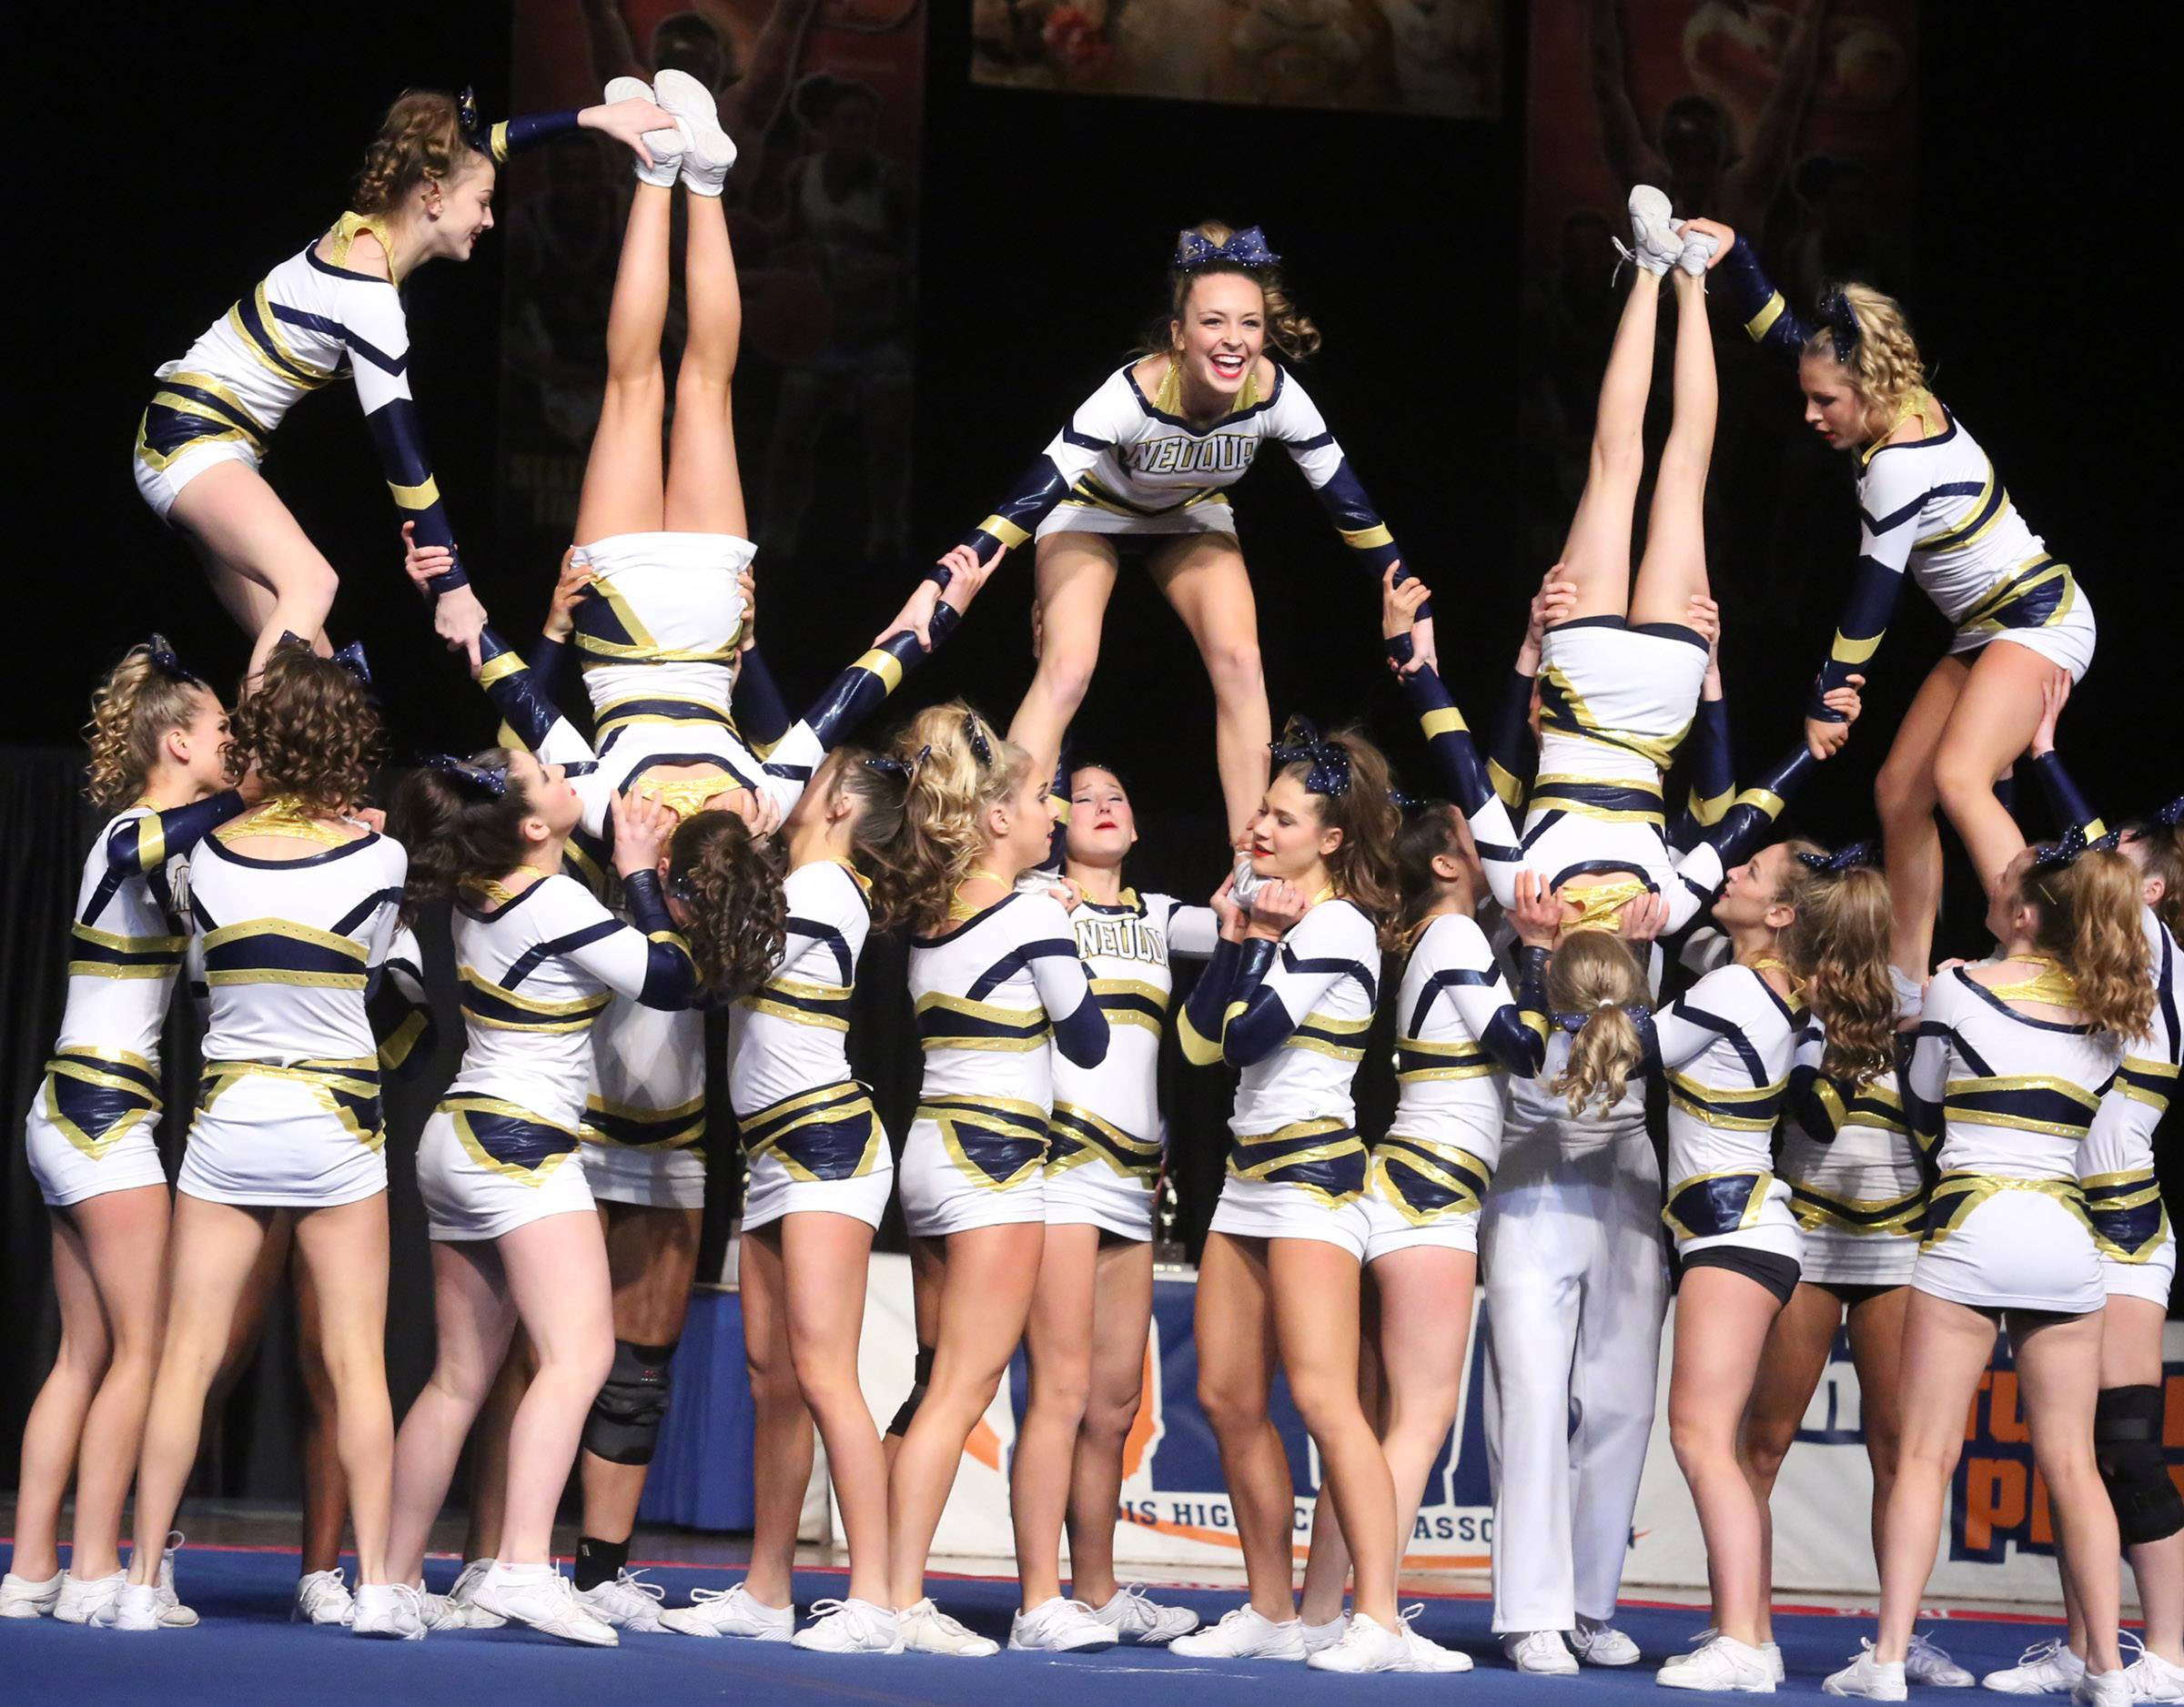 Neuqua Valley High School's cheer team performs in the large team category at the IHSA state finals on Saturday in Bloomington.